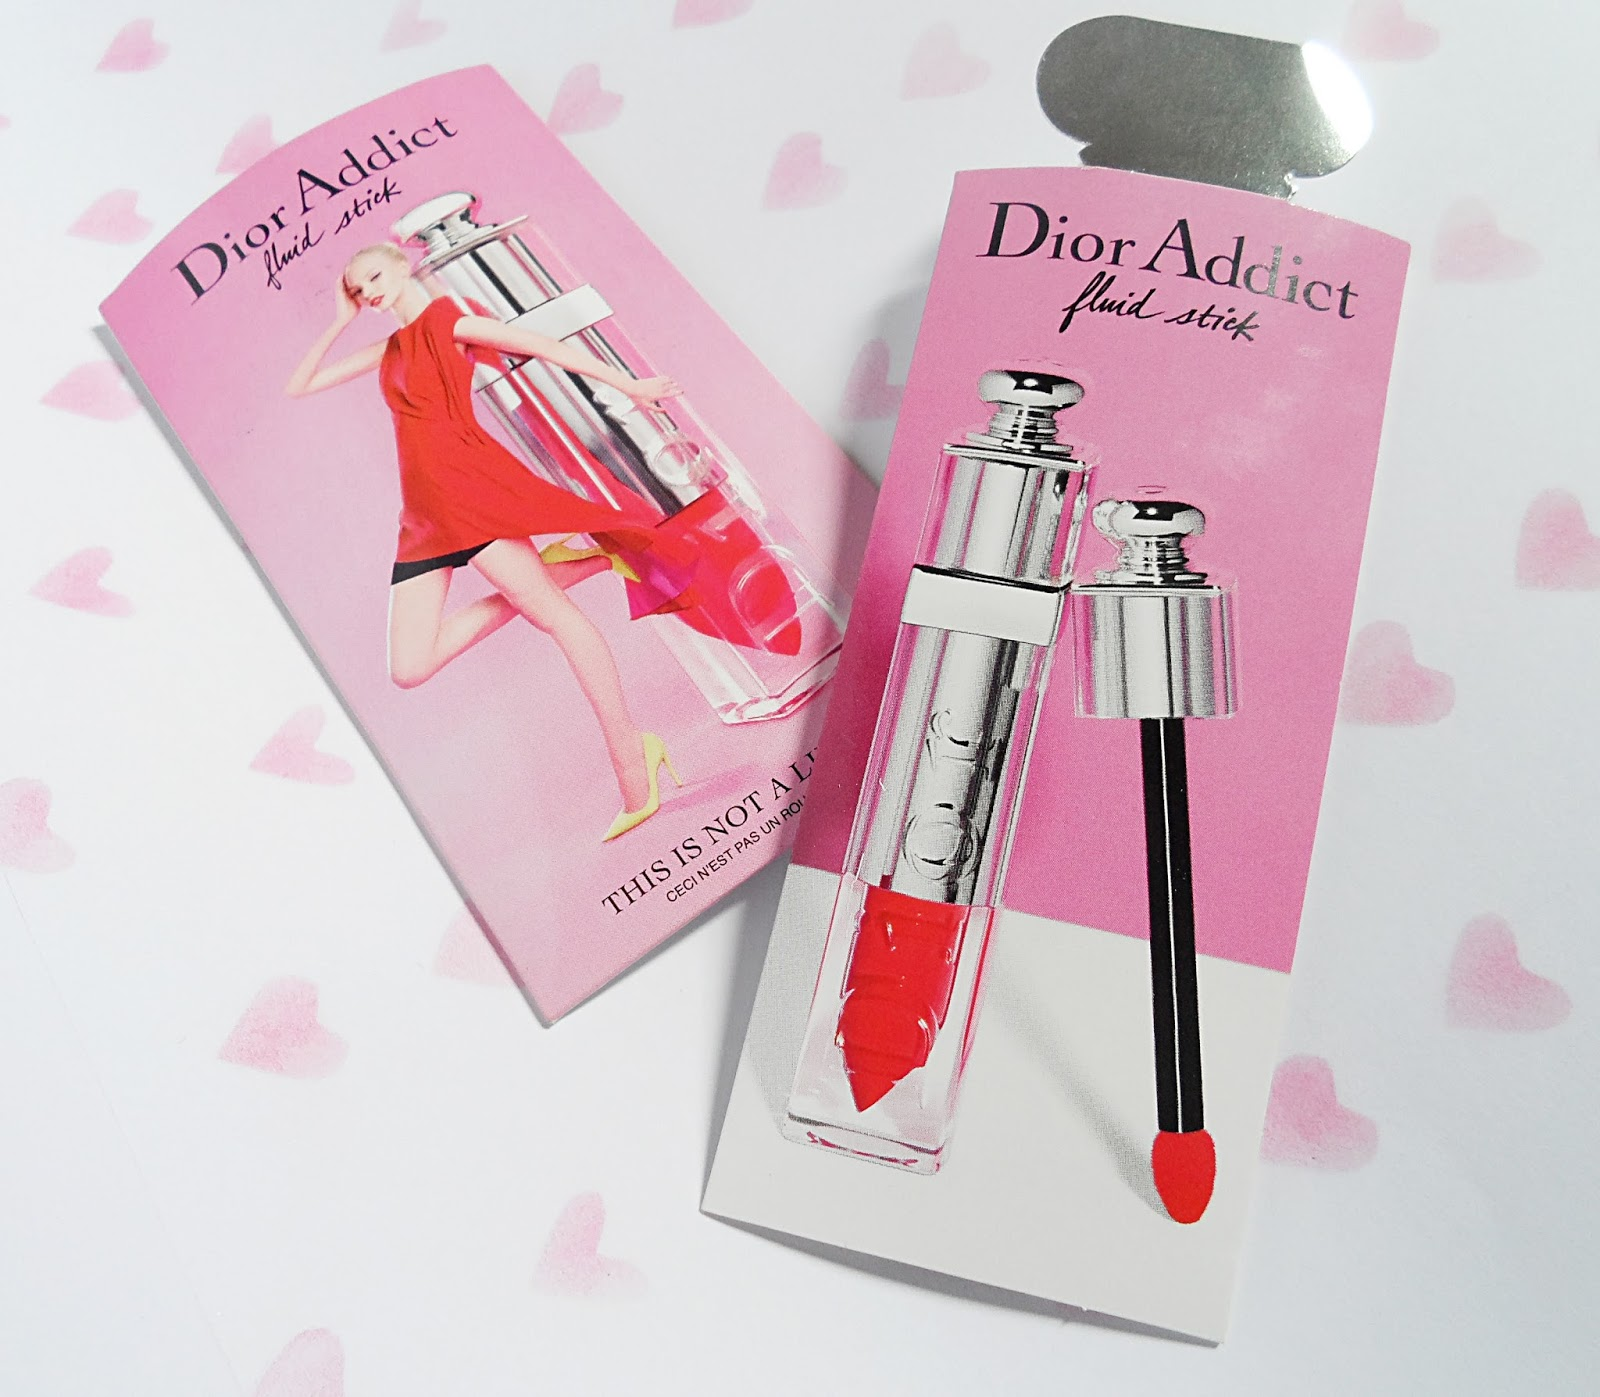 dior addict lipstick fluid stick review pictures swatches blogger liz breygel lips